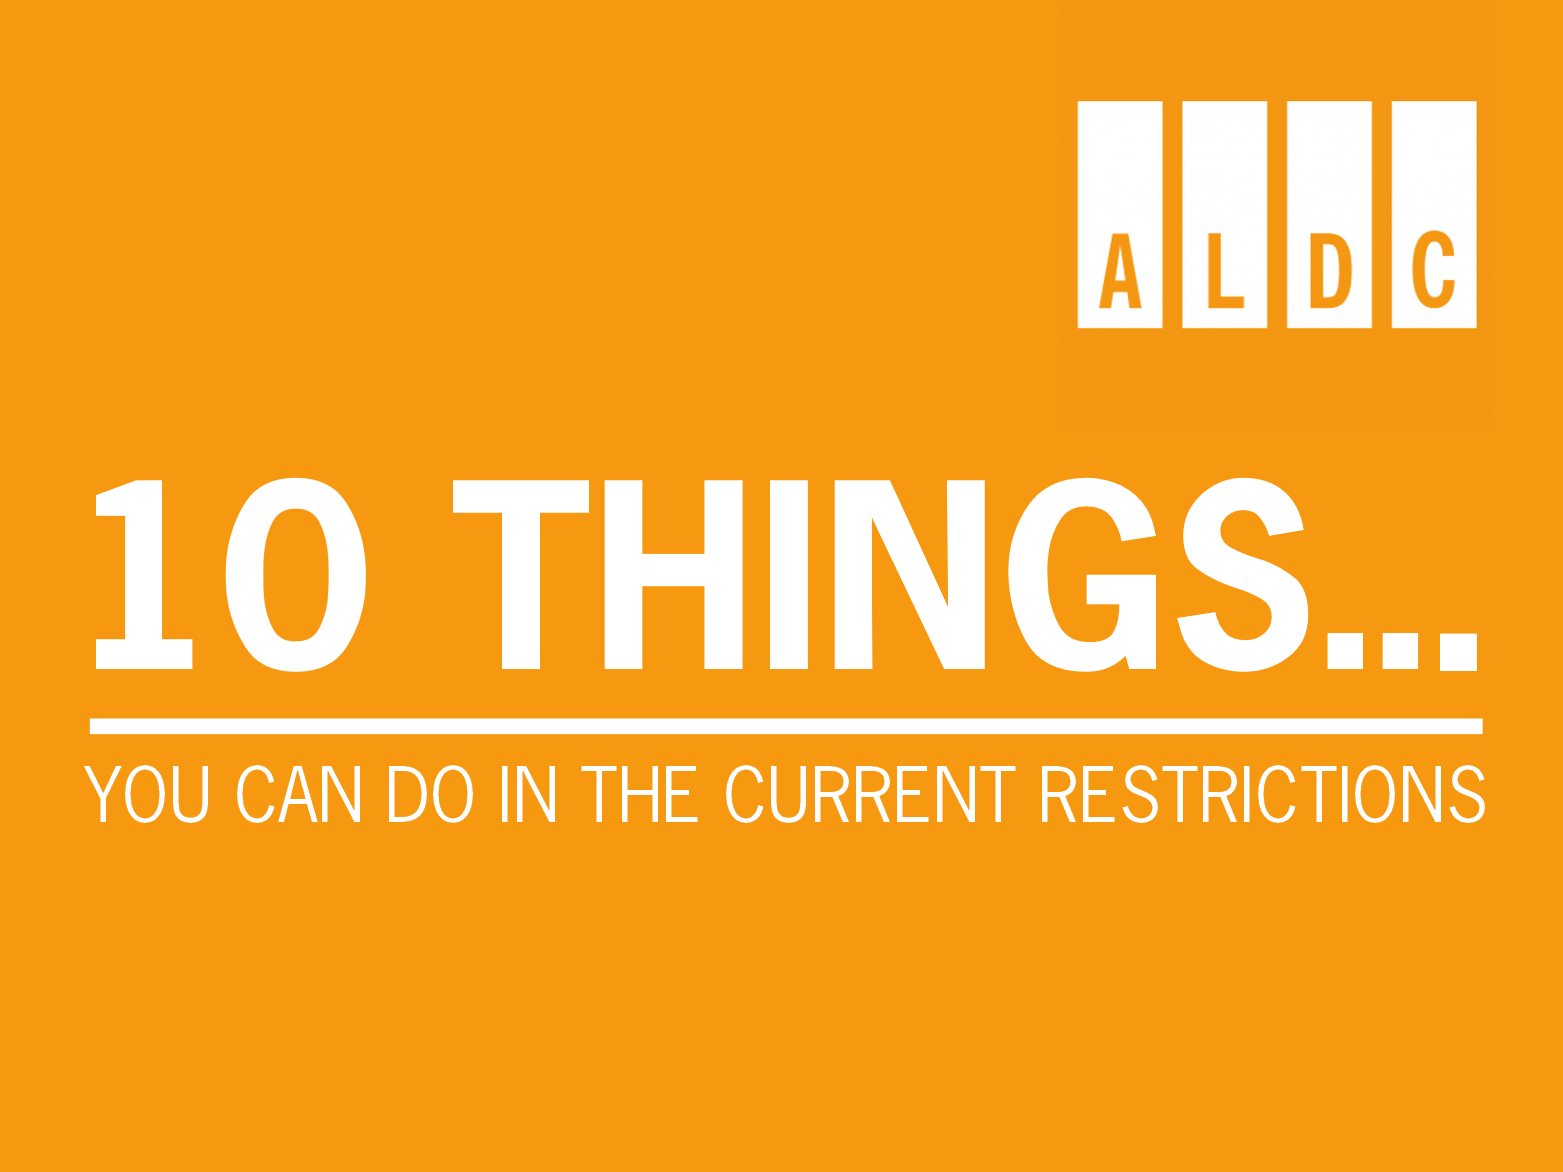 10 Lib Dem things you CAN do in the current restrictions